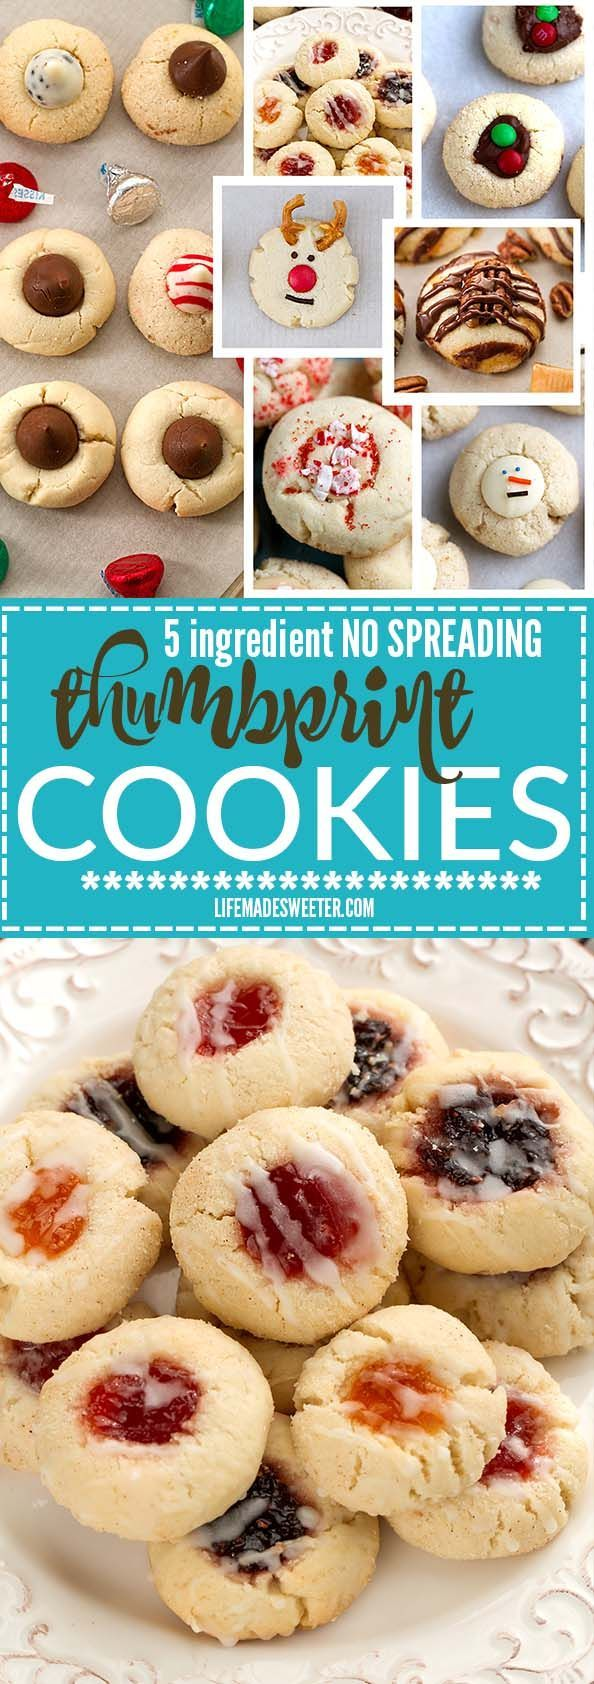 Classic Shortbread Thumbprint Cookies - an easy 5 ingredient dough to make 7 different Christmas cookies including filling with raspberry, strawberry jam, Hershey's Kisses,! Best of all there's NO spreading or CHILLING required! Perfect for your holiday cookie platter!